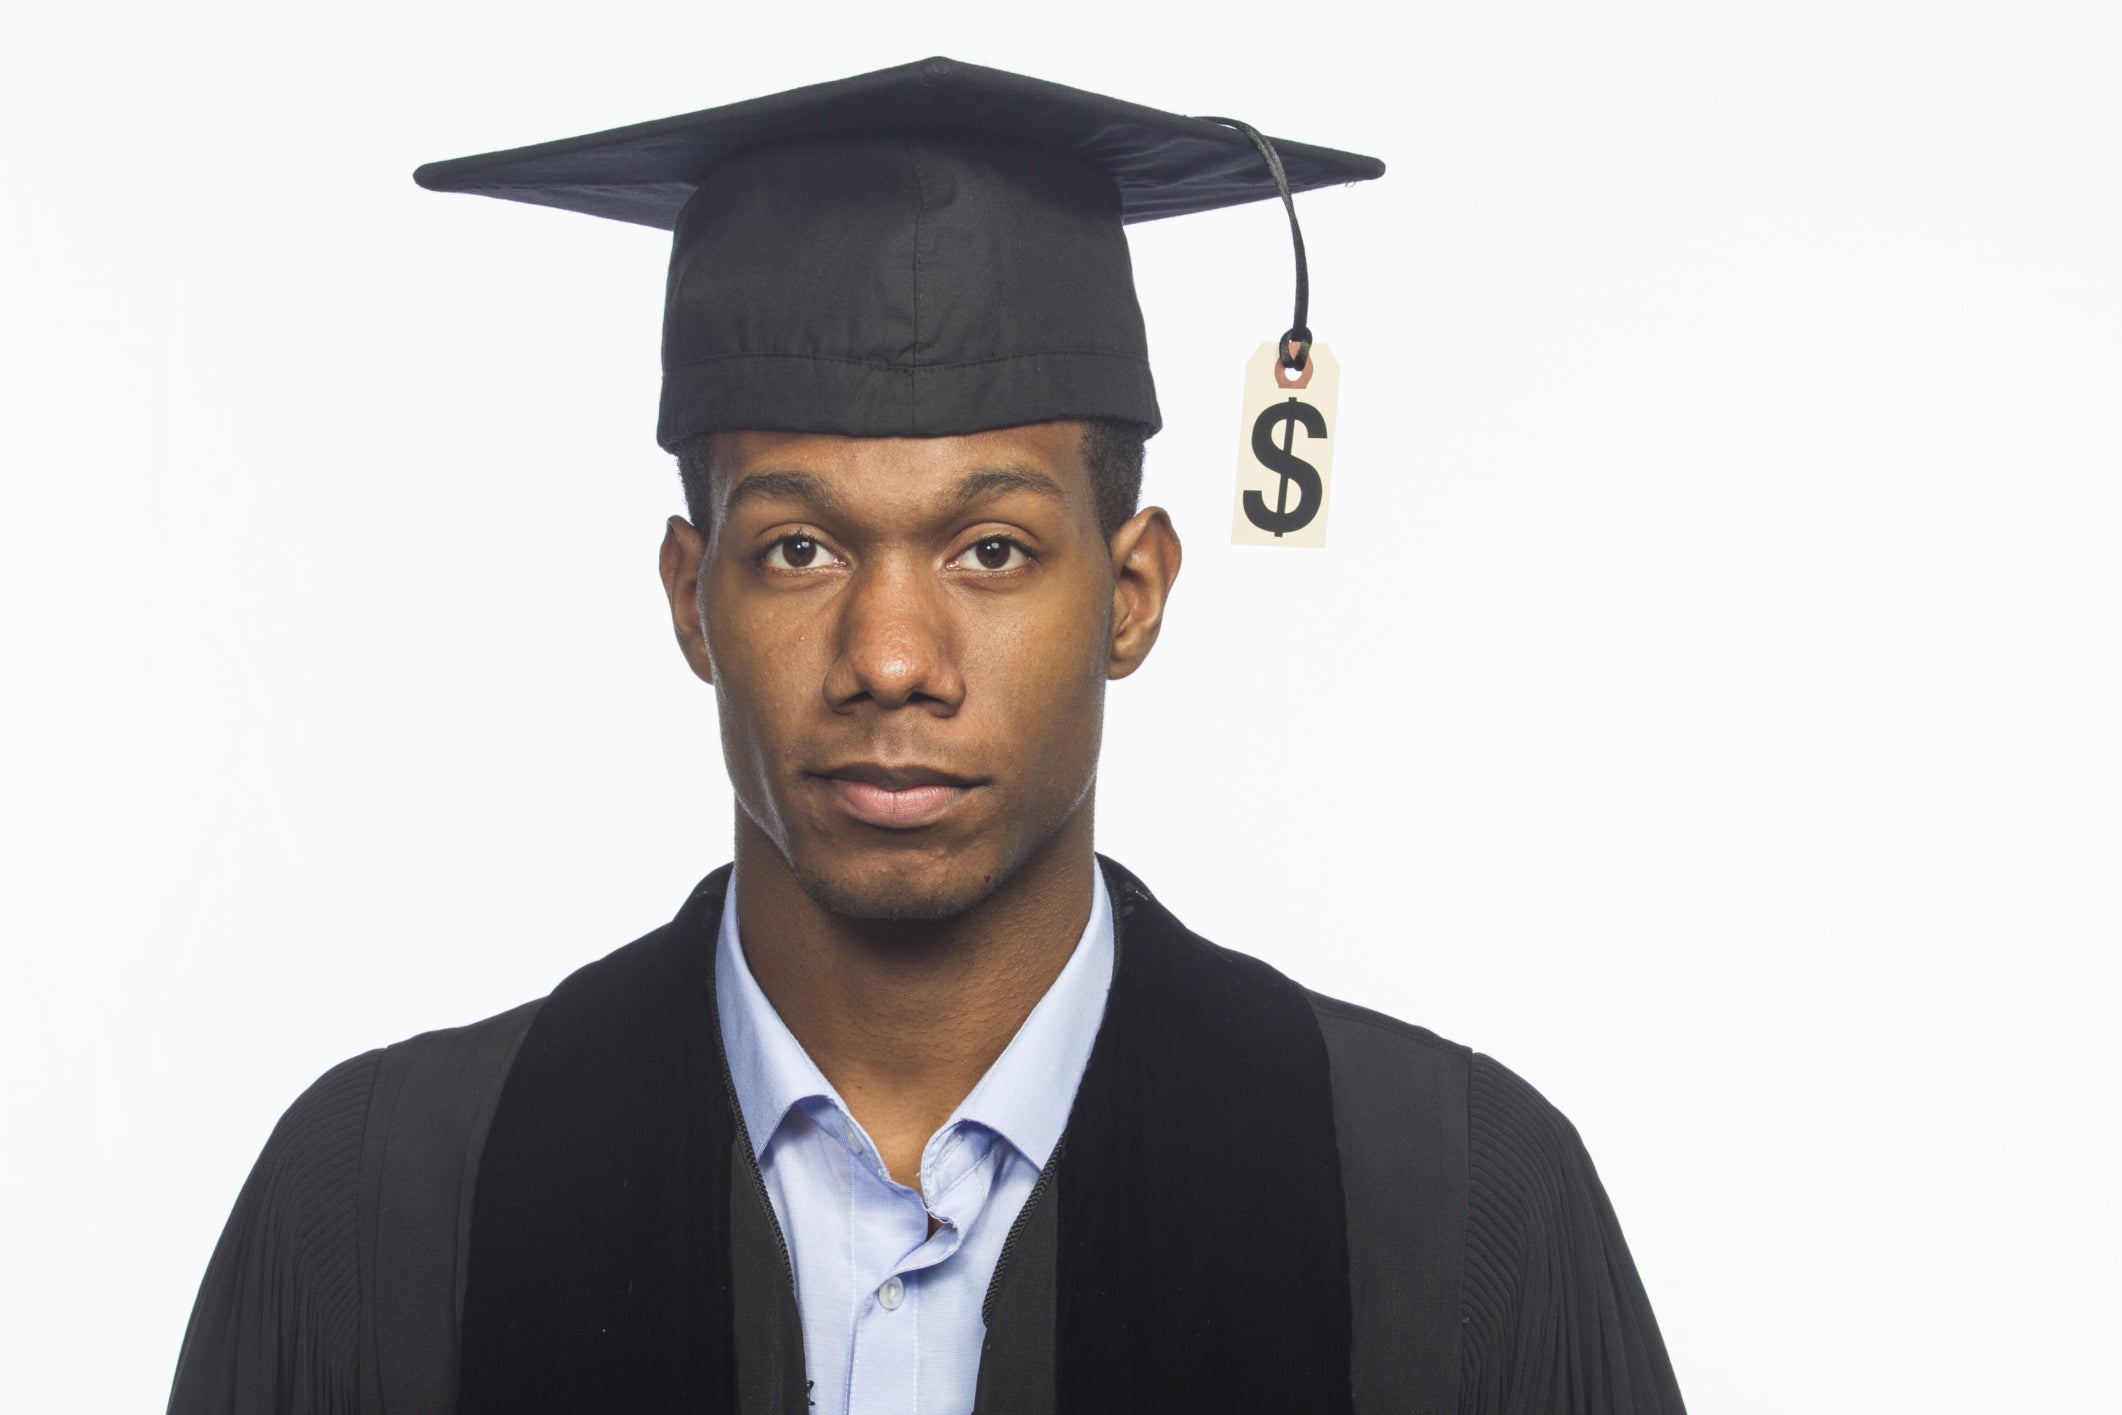 College graduate with dollar sign hanging from the tassel of his hat.